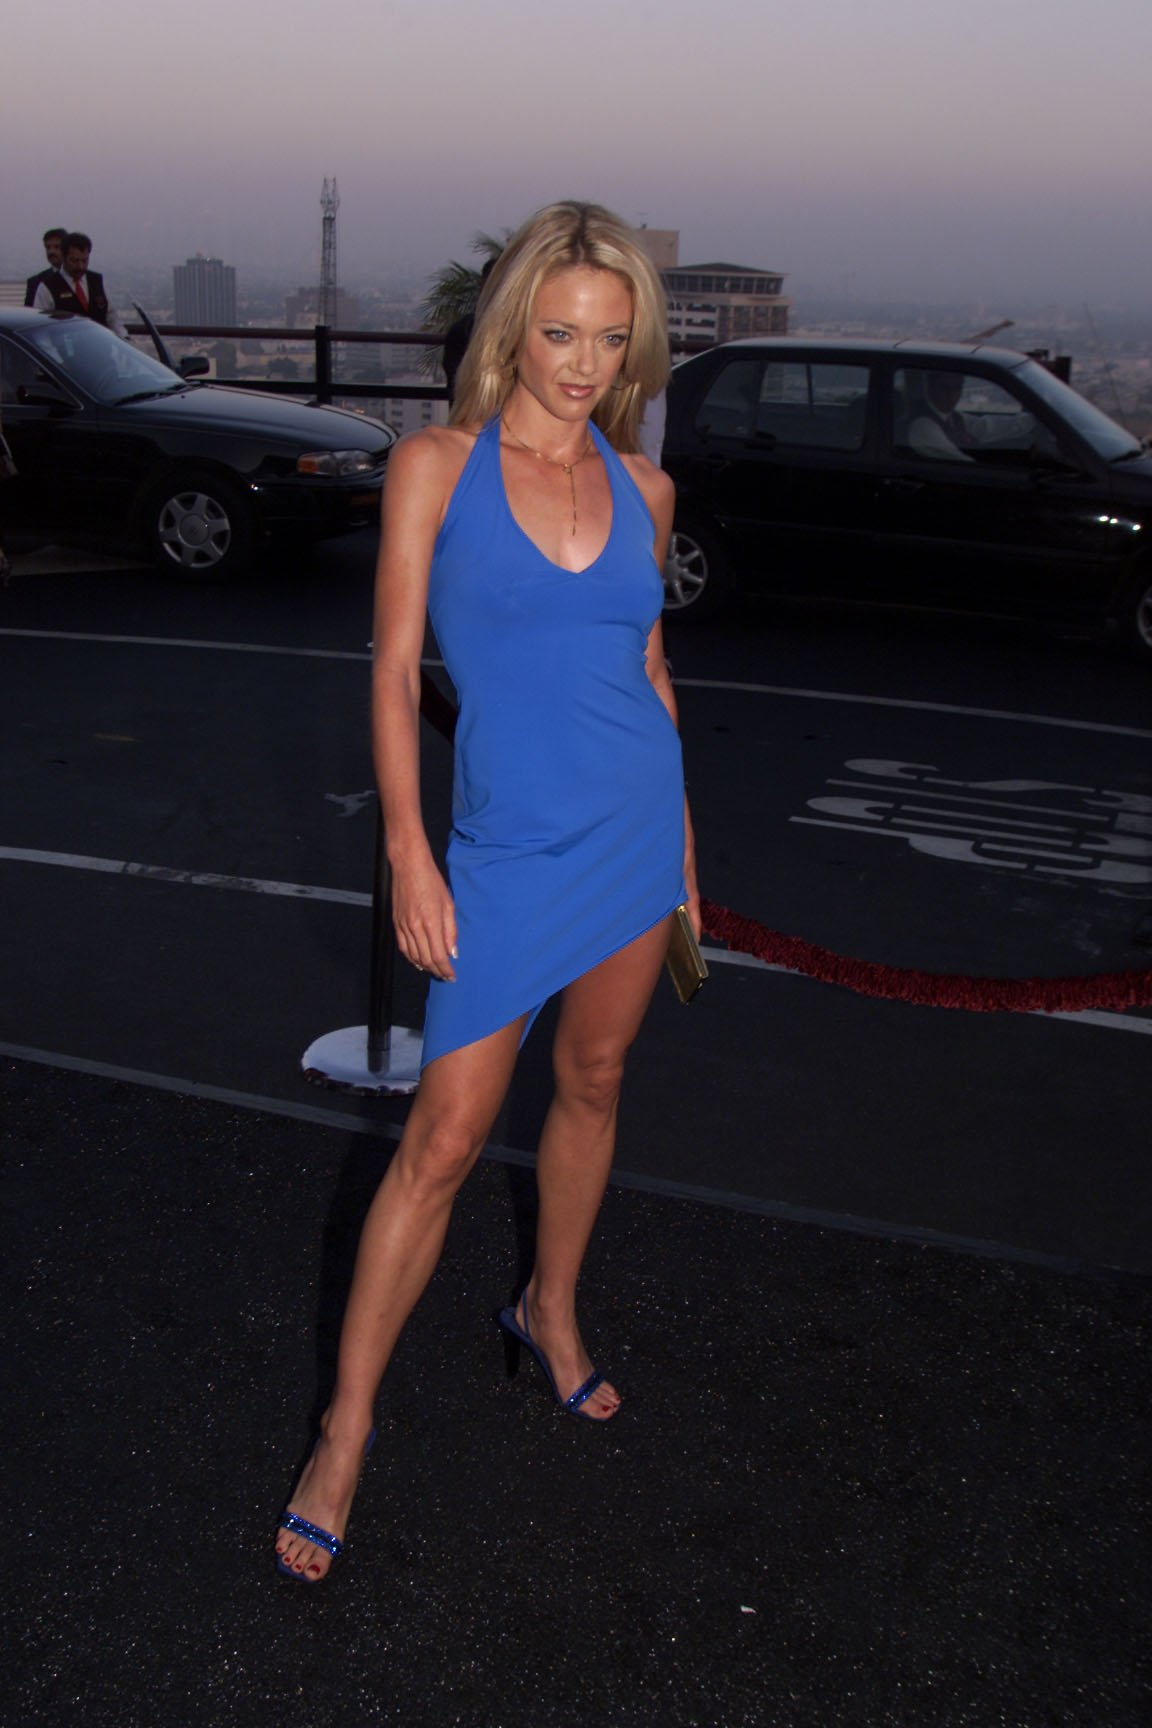 Lisa Robin Kelly of 'That '70s Show' arrives at the FOX 2000 summer press tour party in Hollywood in 2000 | Source: Getty Images